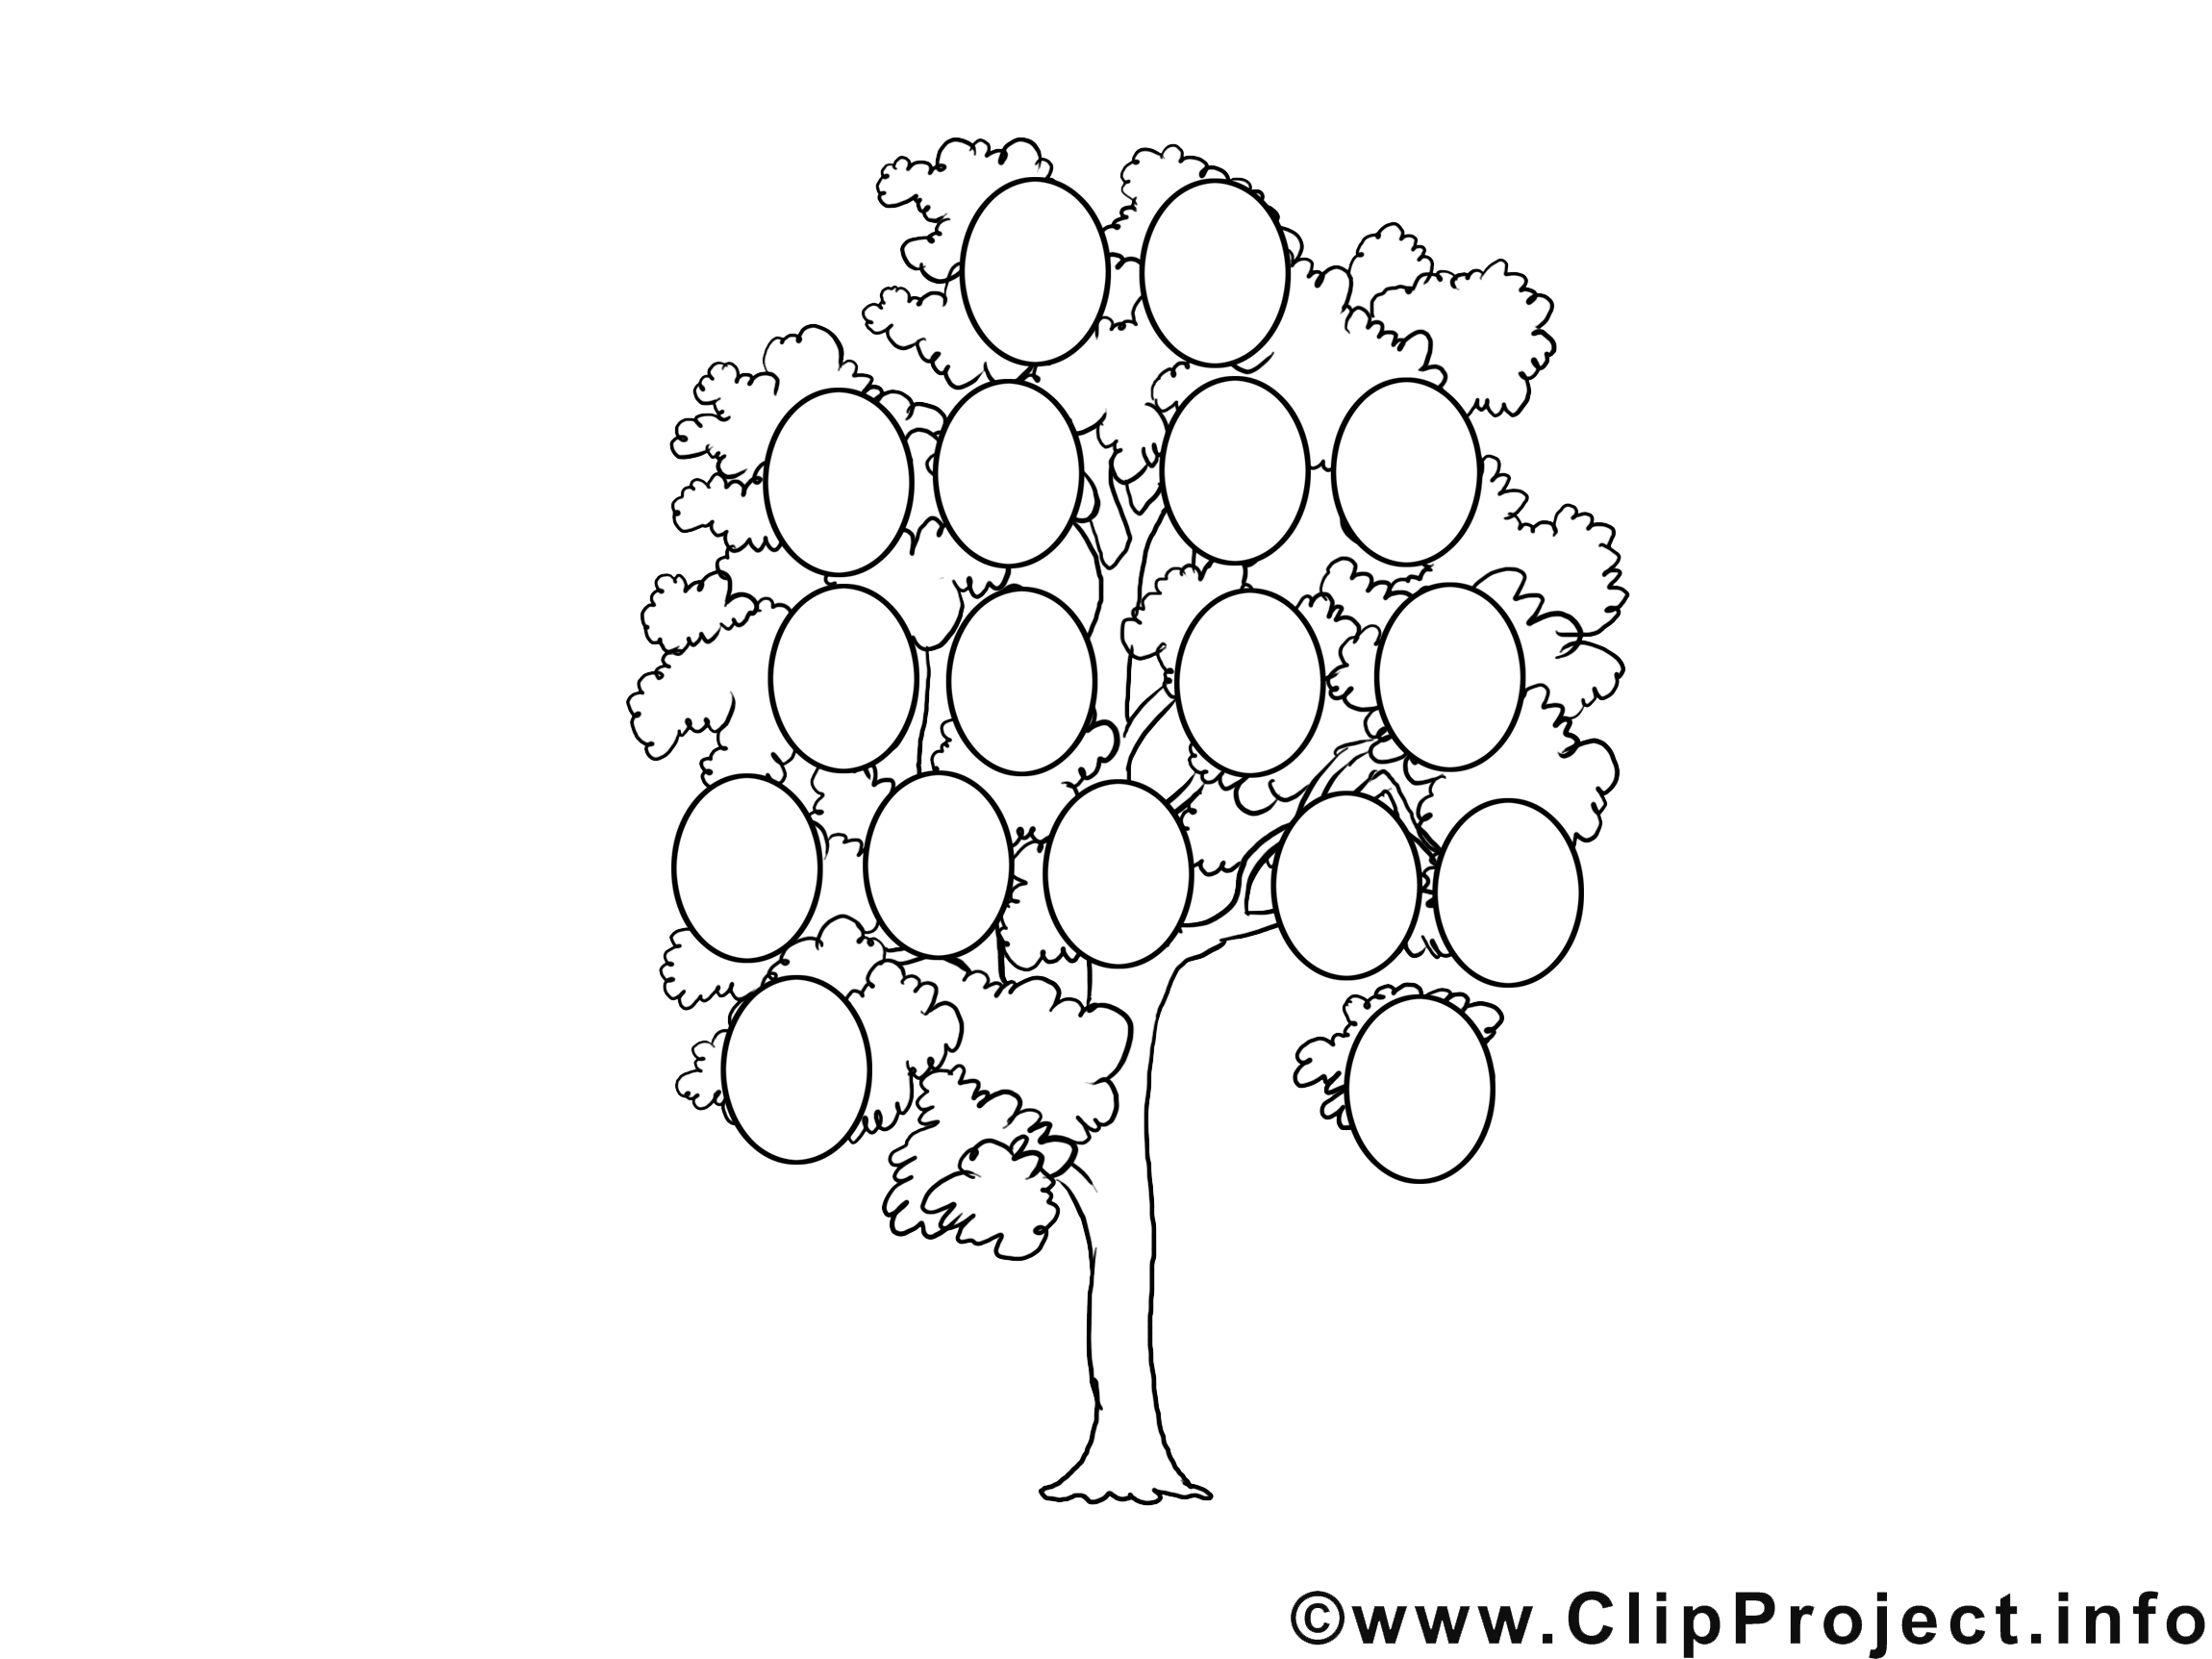 Coloriage Arbre Genealogique.Arbre Genealogique Illustration Divers A Colorier